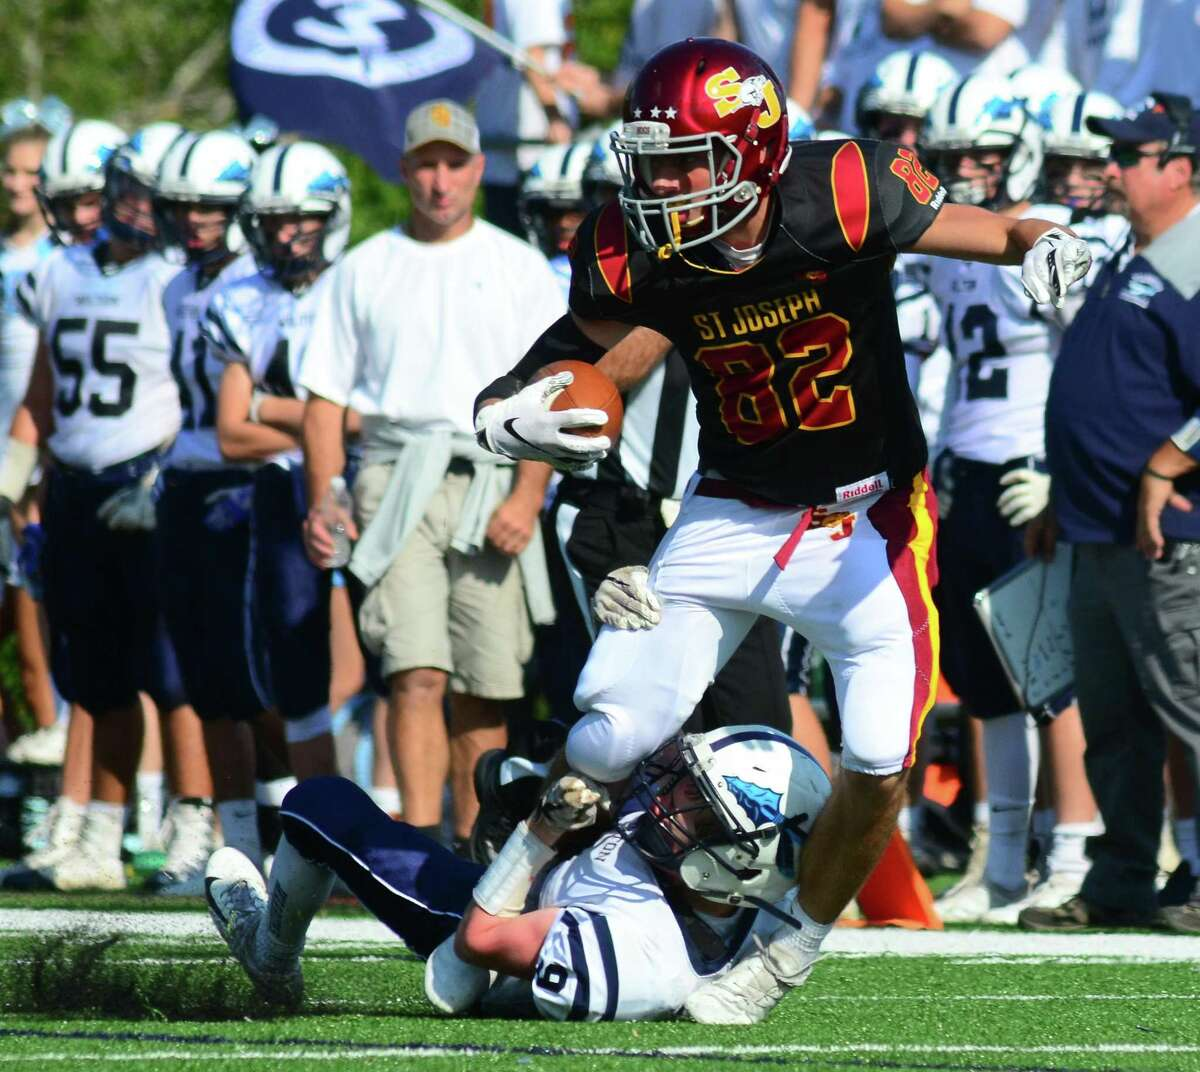 St. Joseph's William Diamantis (8) is tackled by Wilton's Thomas Costello during Saturday's game in Trumbull.